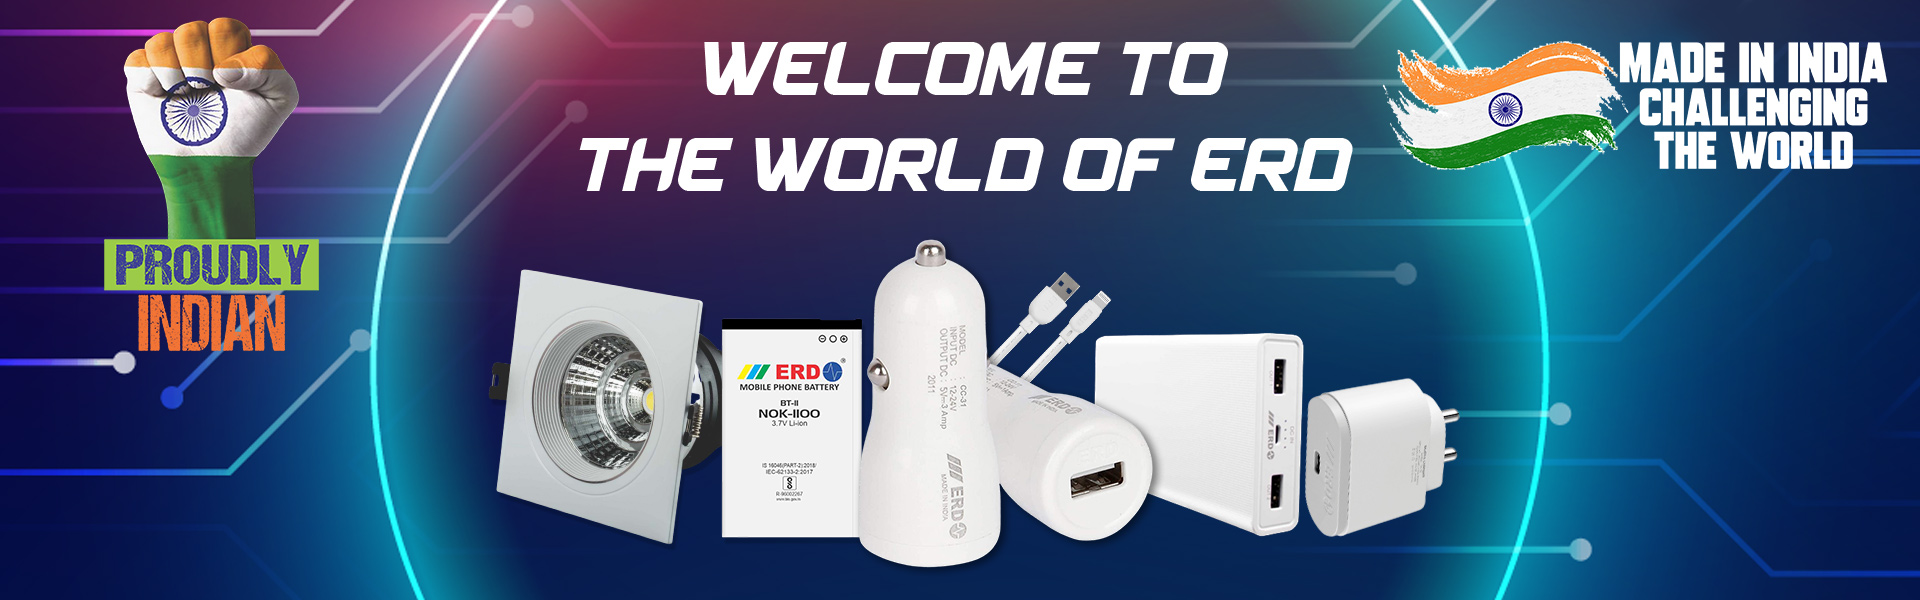 Welcome to ERD Proudly Indian Made in India Challenging The World